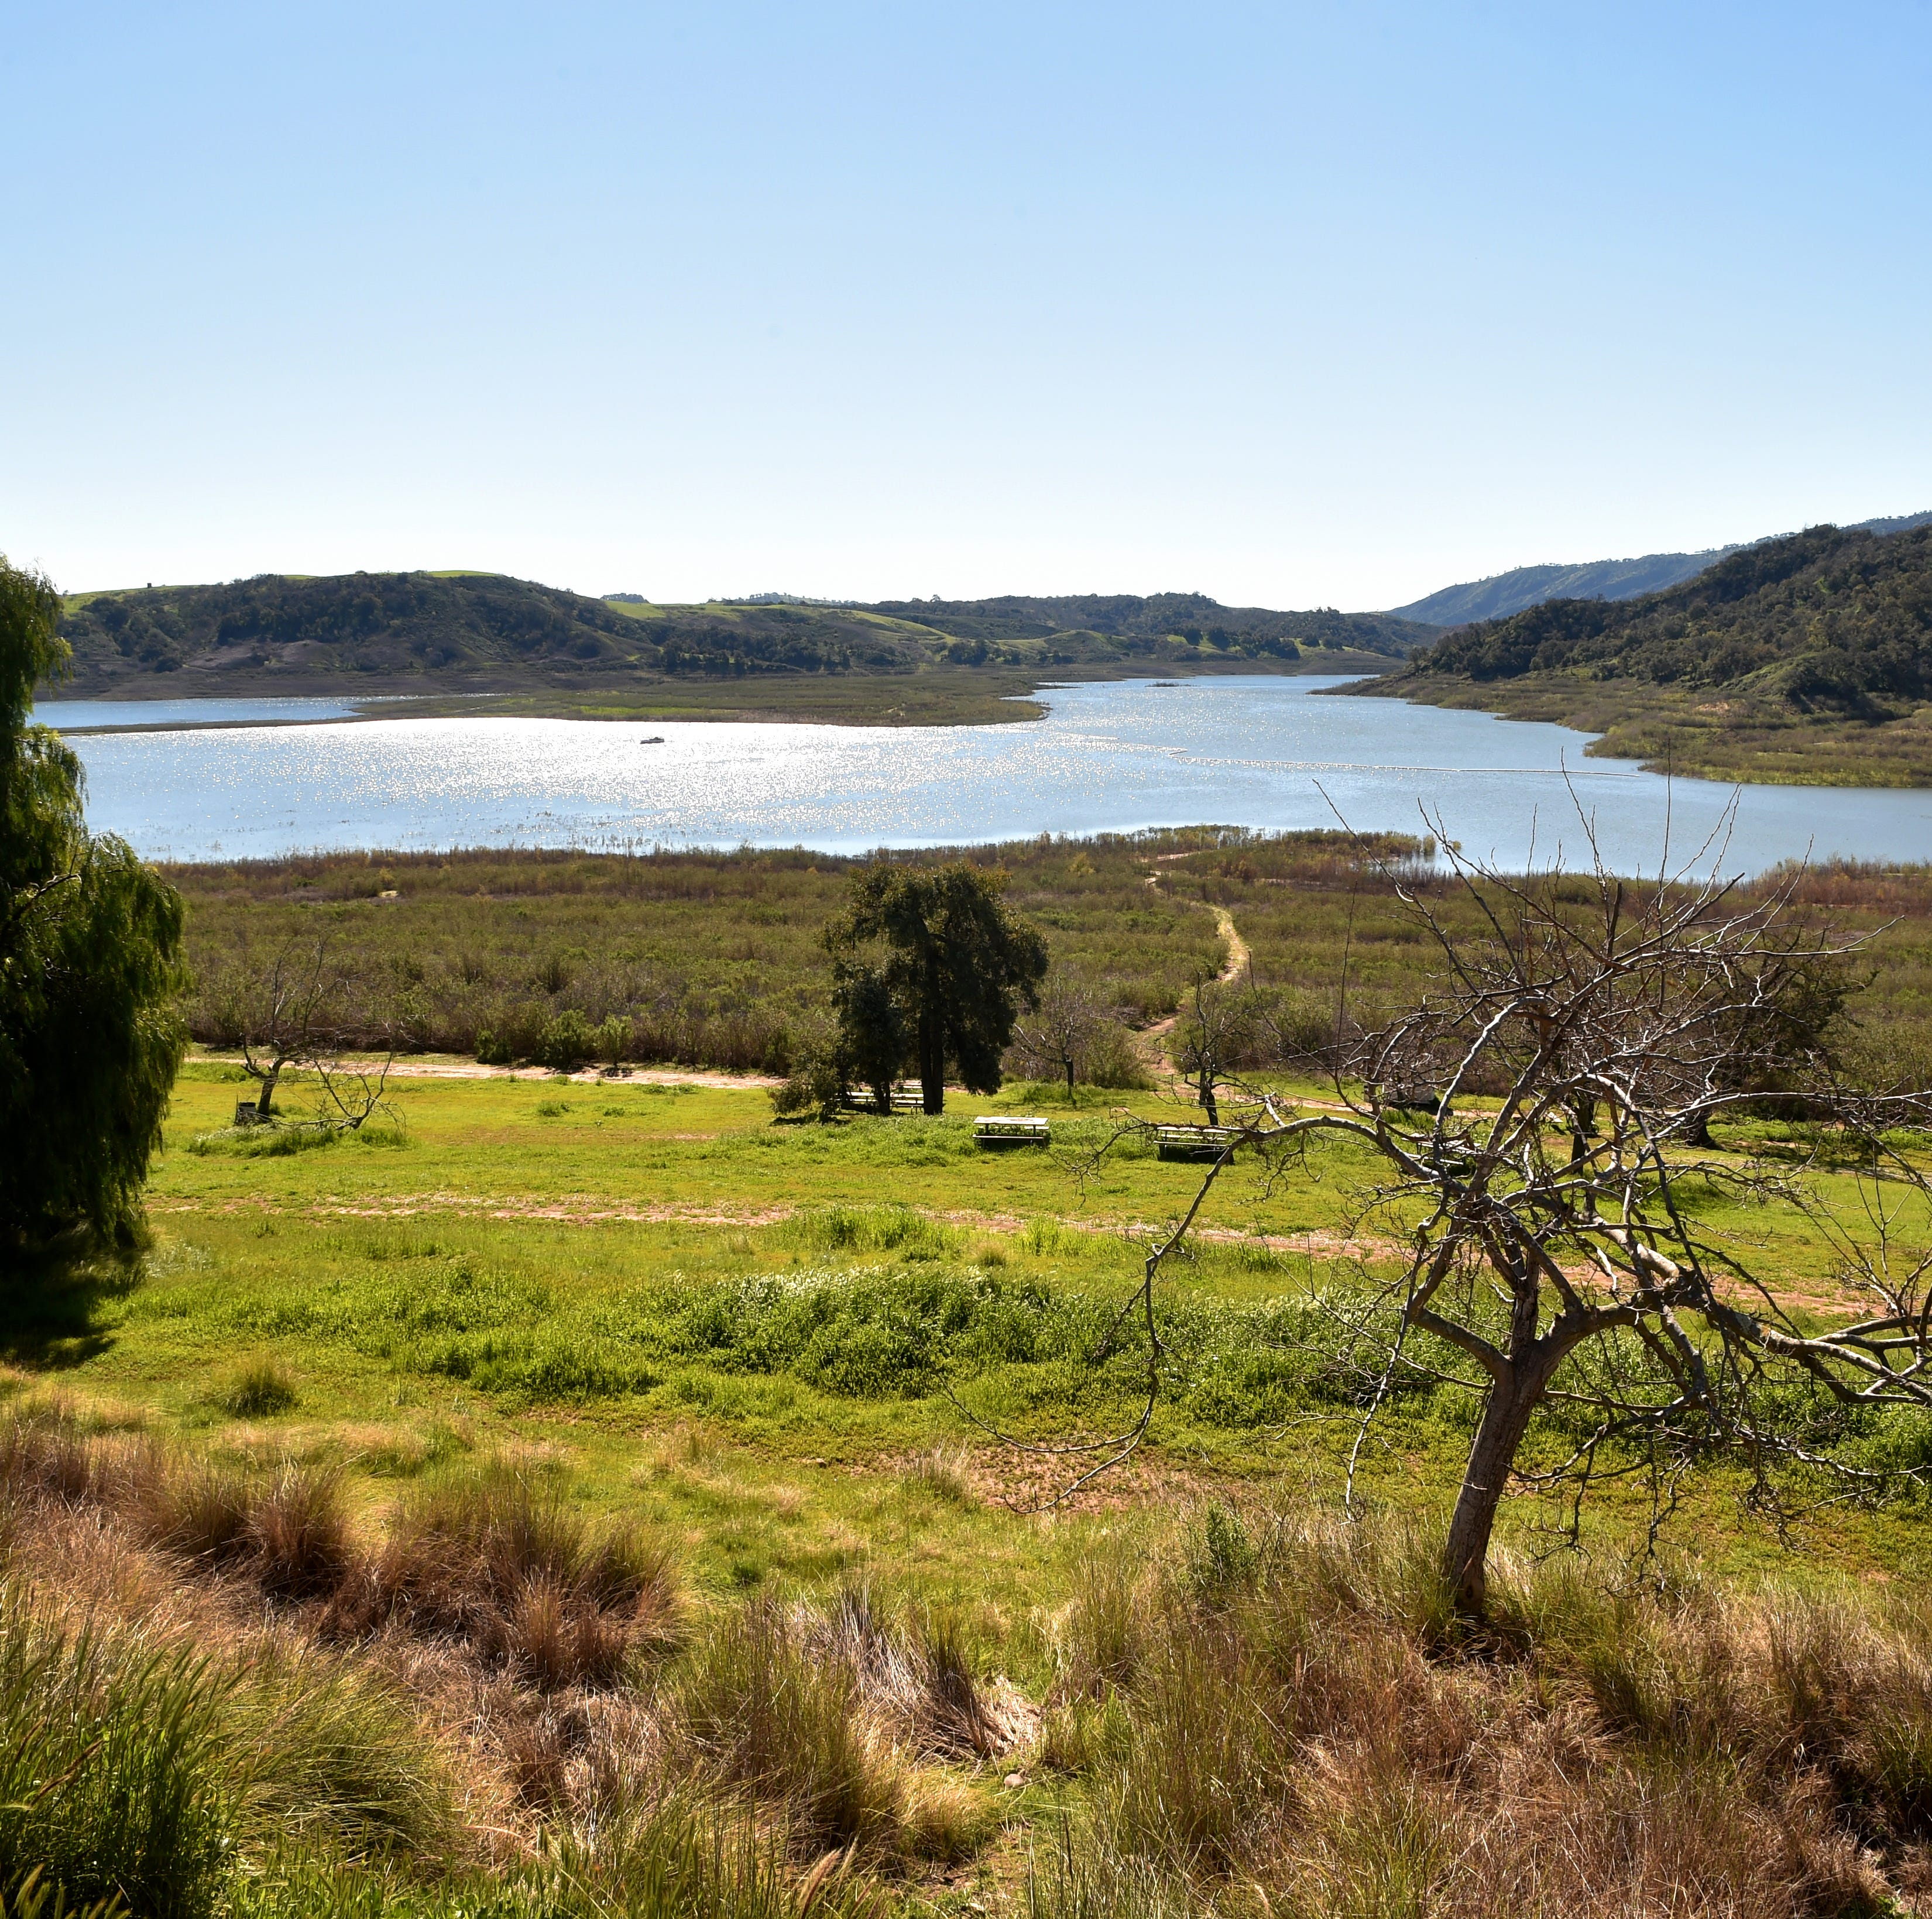 Lake Casitas gets OK to divert more water just as it passes the mark to do so